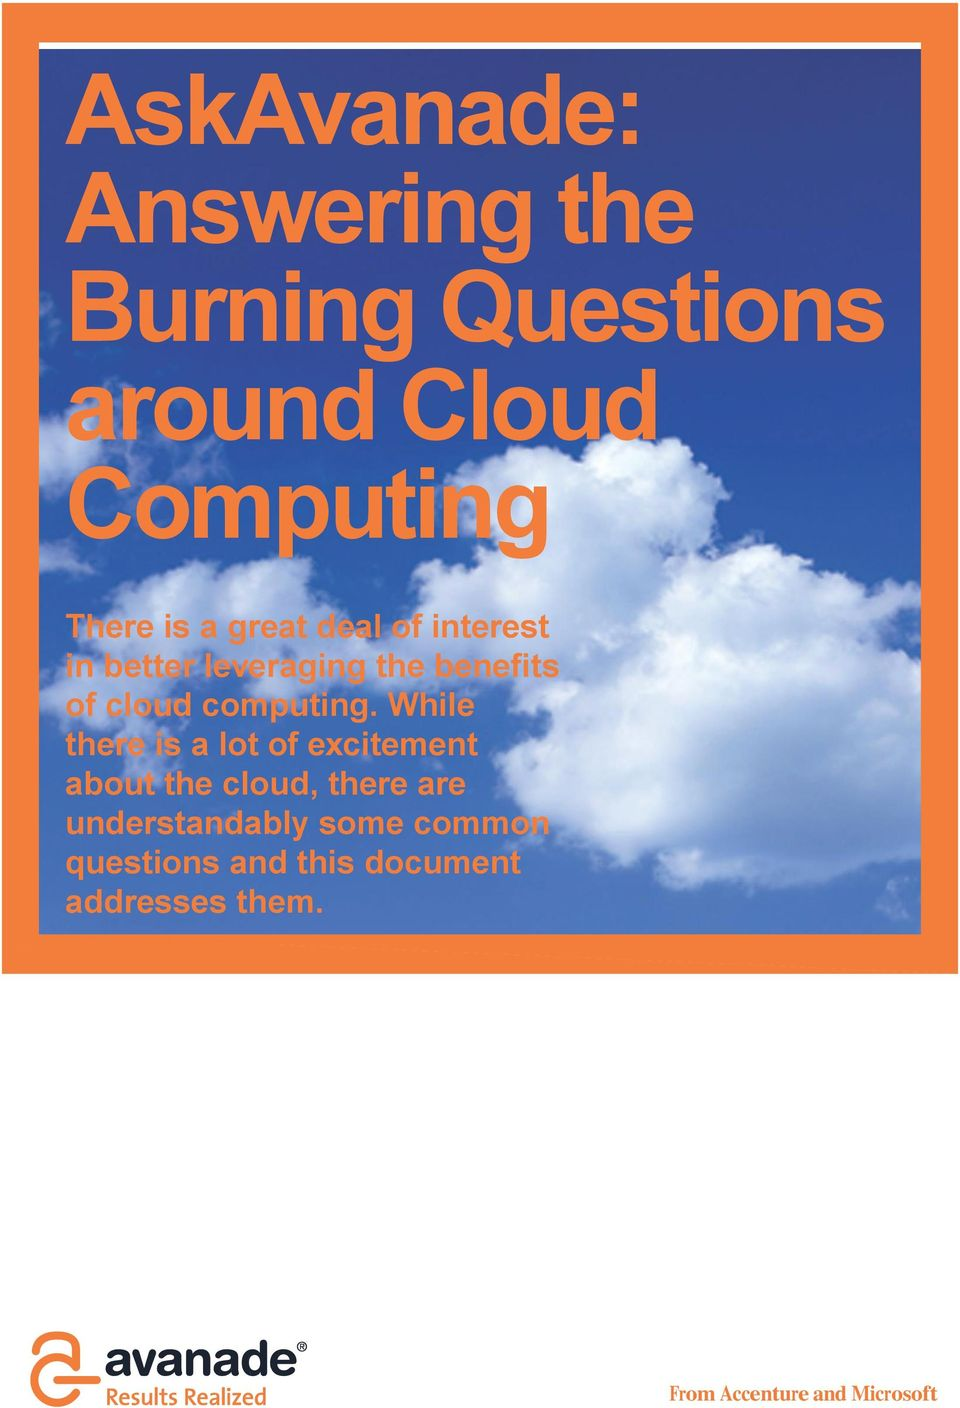 While there is a lot of excitement about the cloud, there are understandably